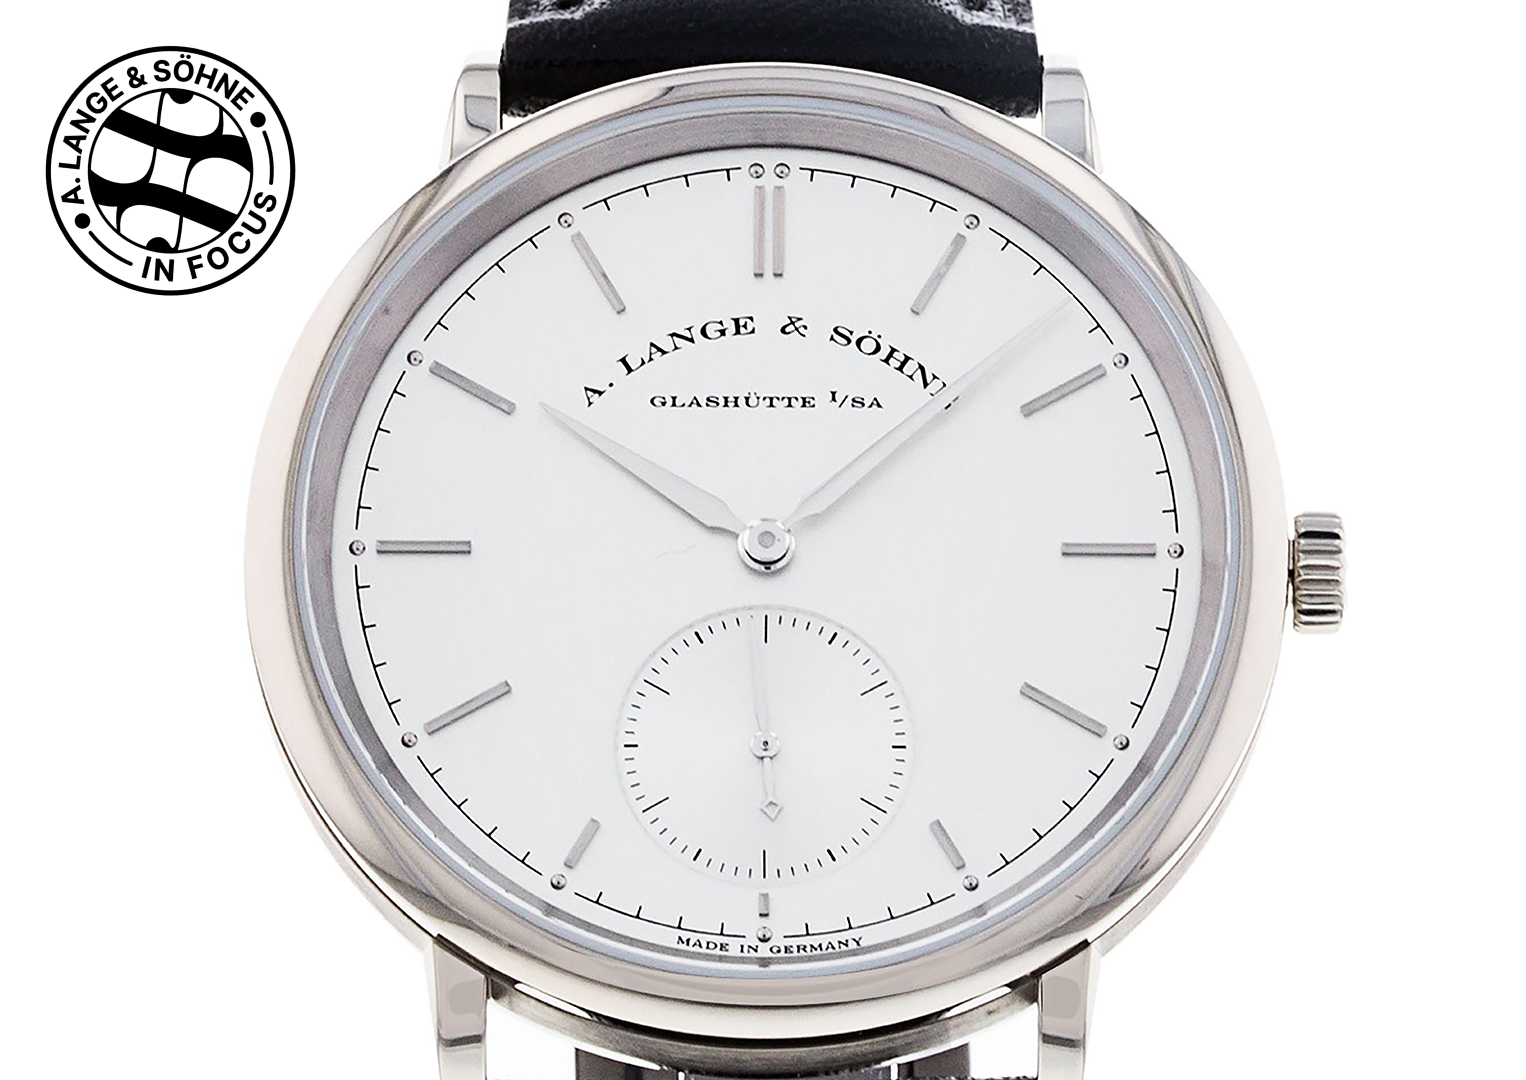 A Lange 1 model, one of the watches that helped re-launch the brand